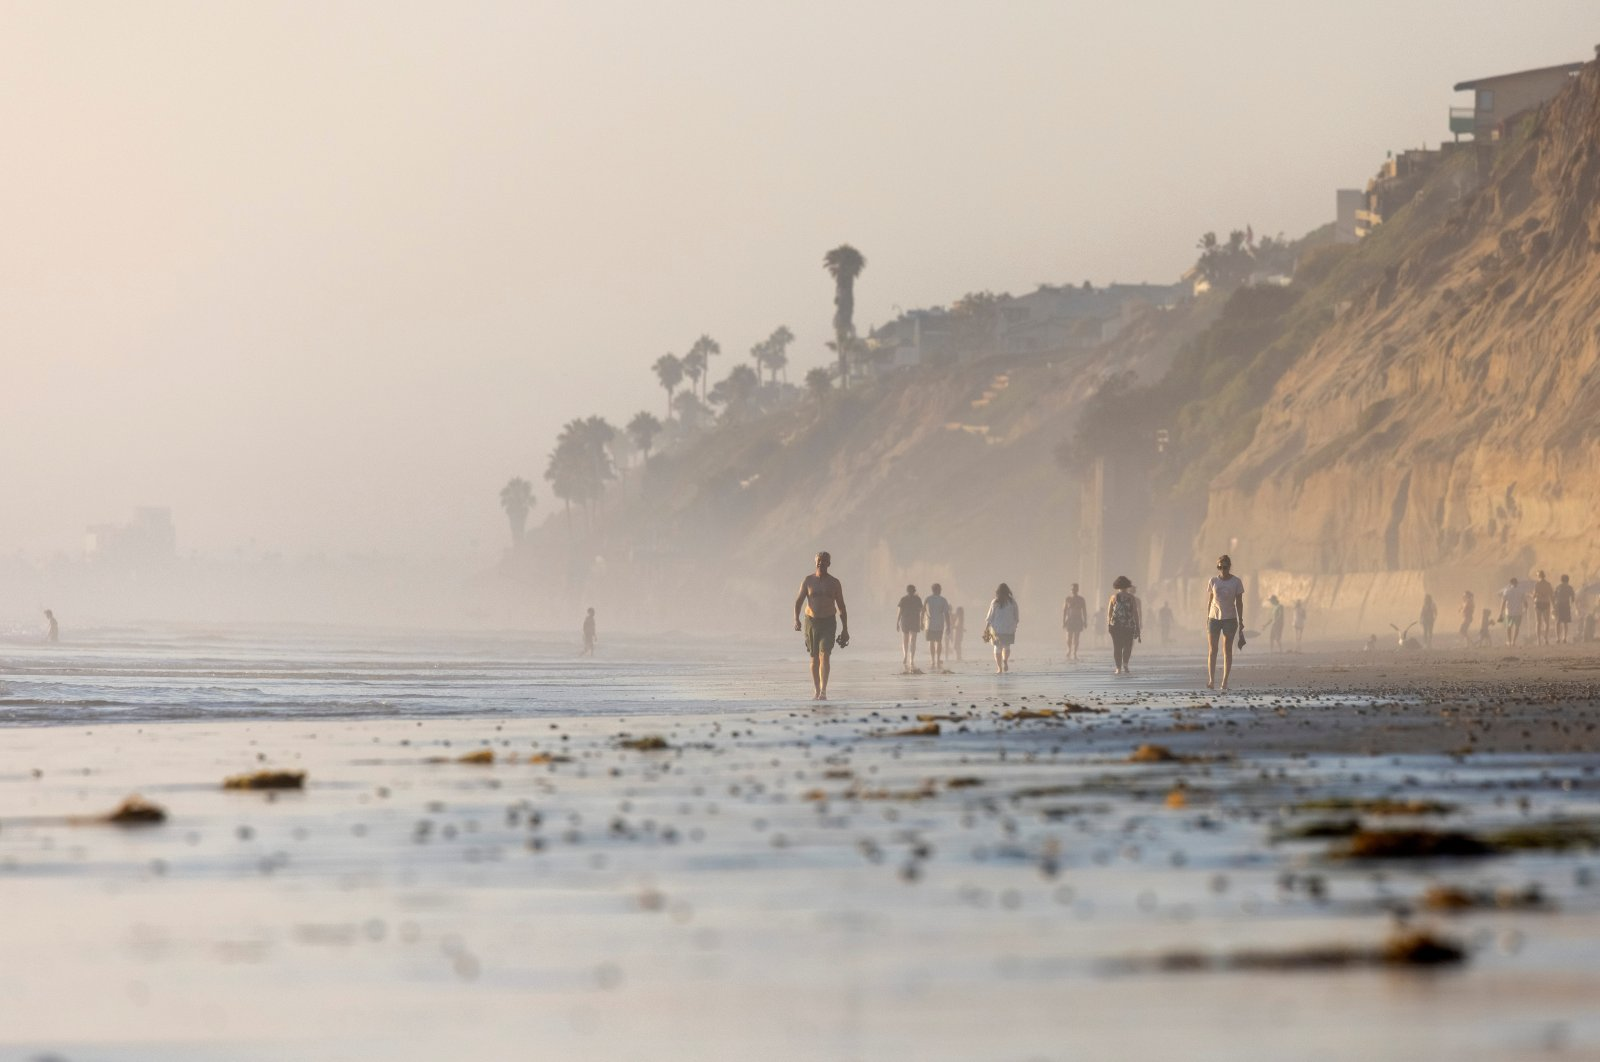 People cool off with an evening walk along the beach in Encinitas, California, U.S., Aug. 26, 2021. (Reuters Photo)